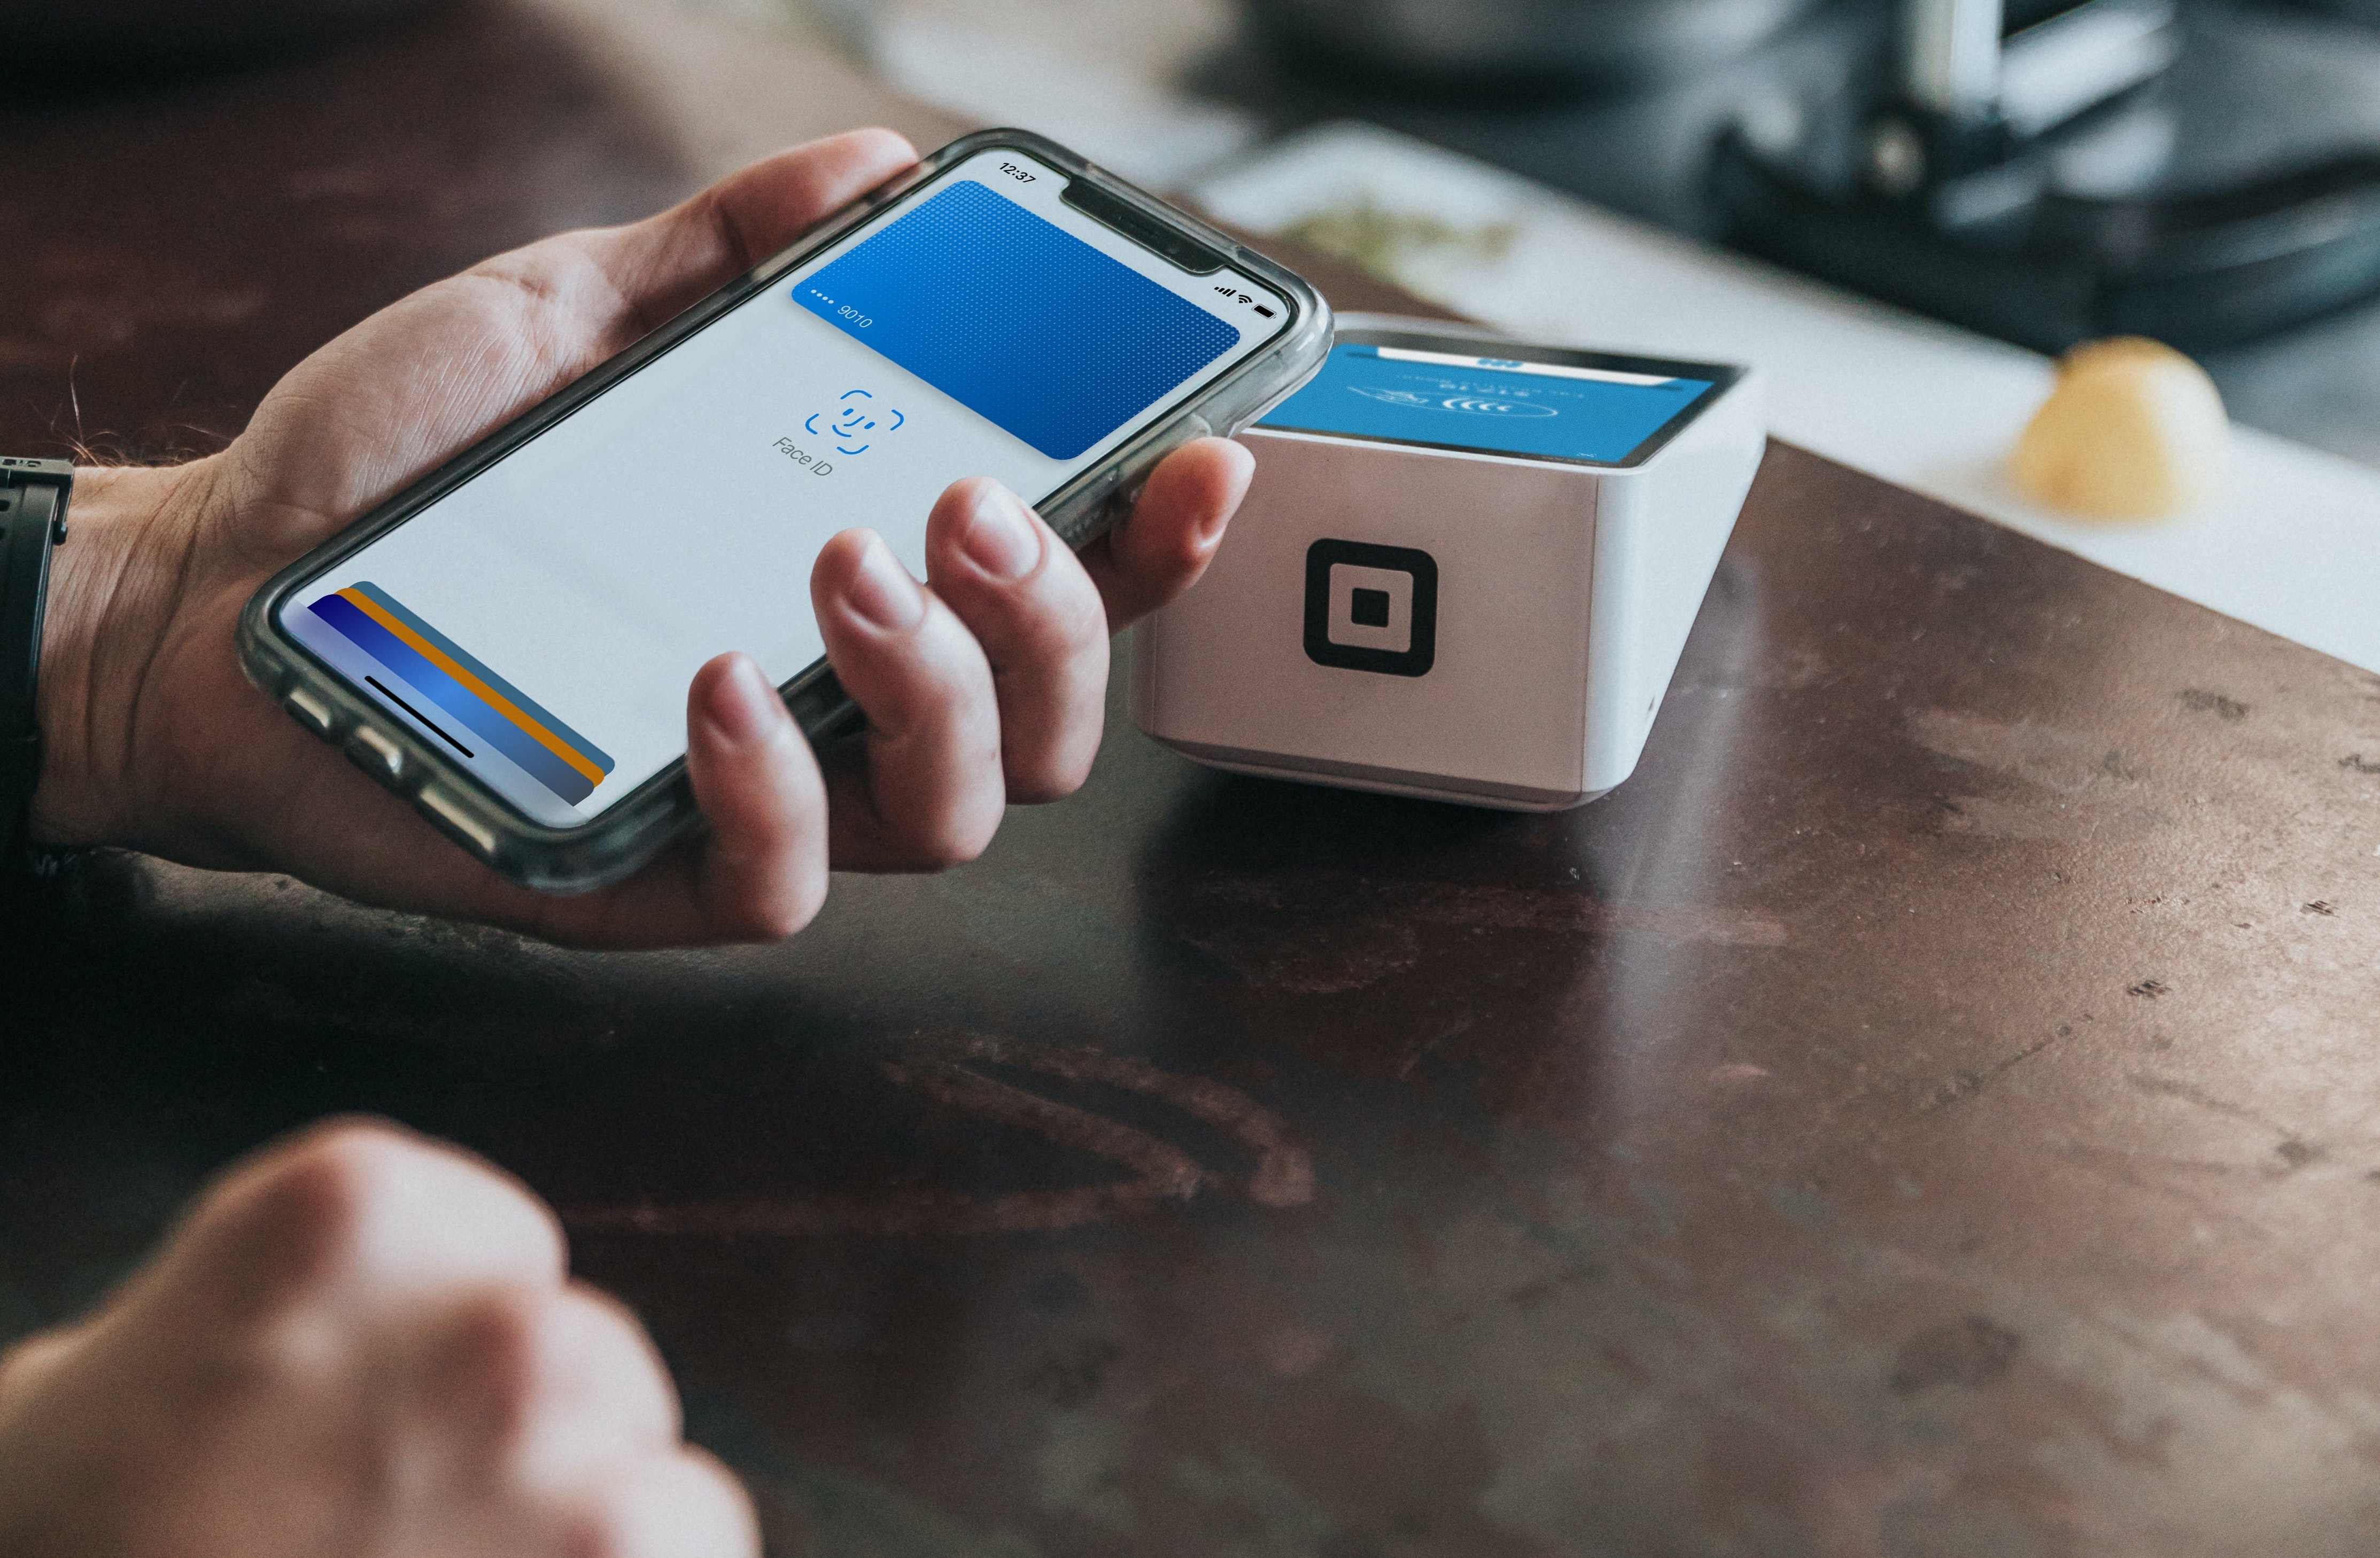 photo of person using apple pay on an iphone to pay using a credit card terminal